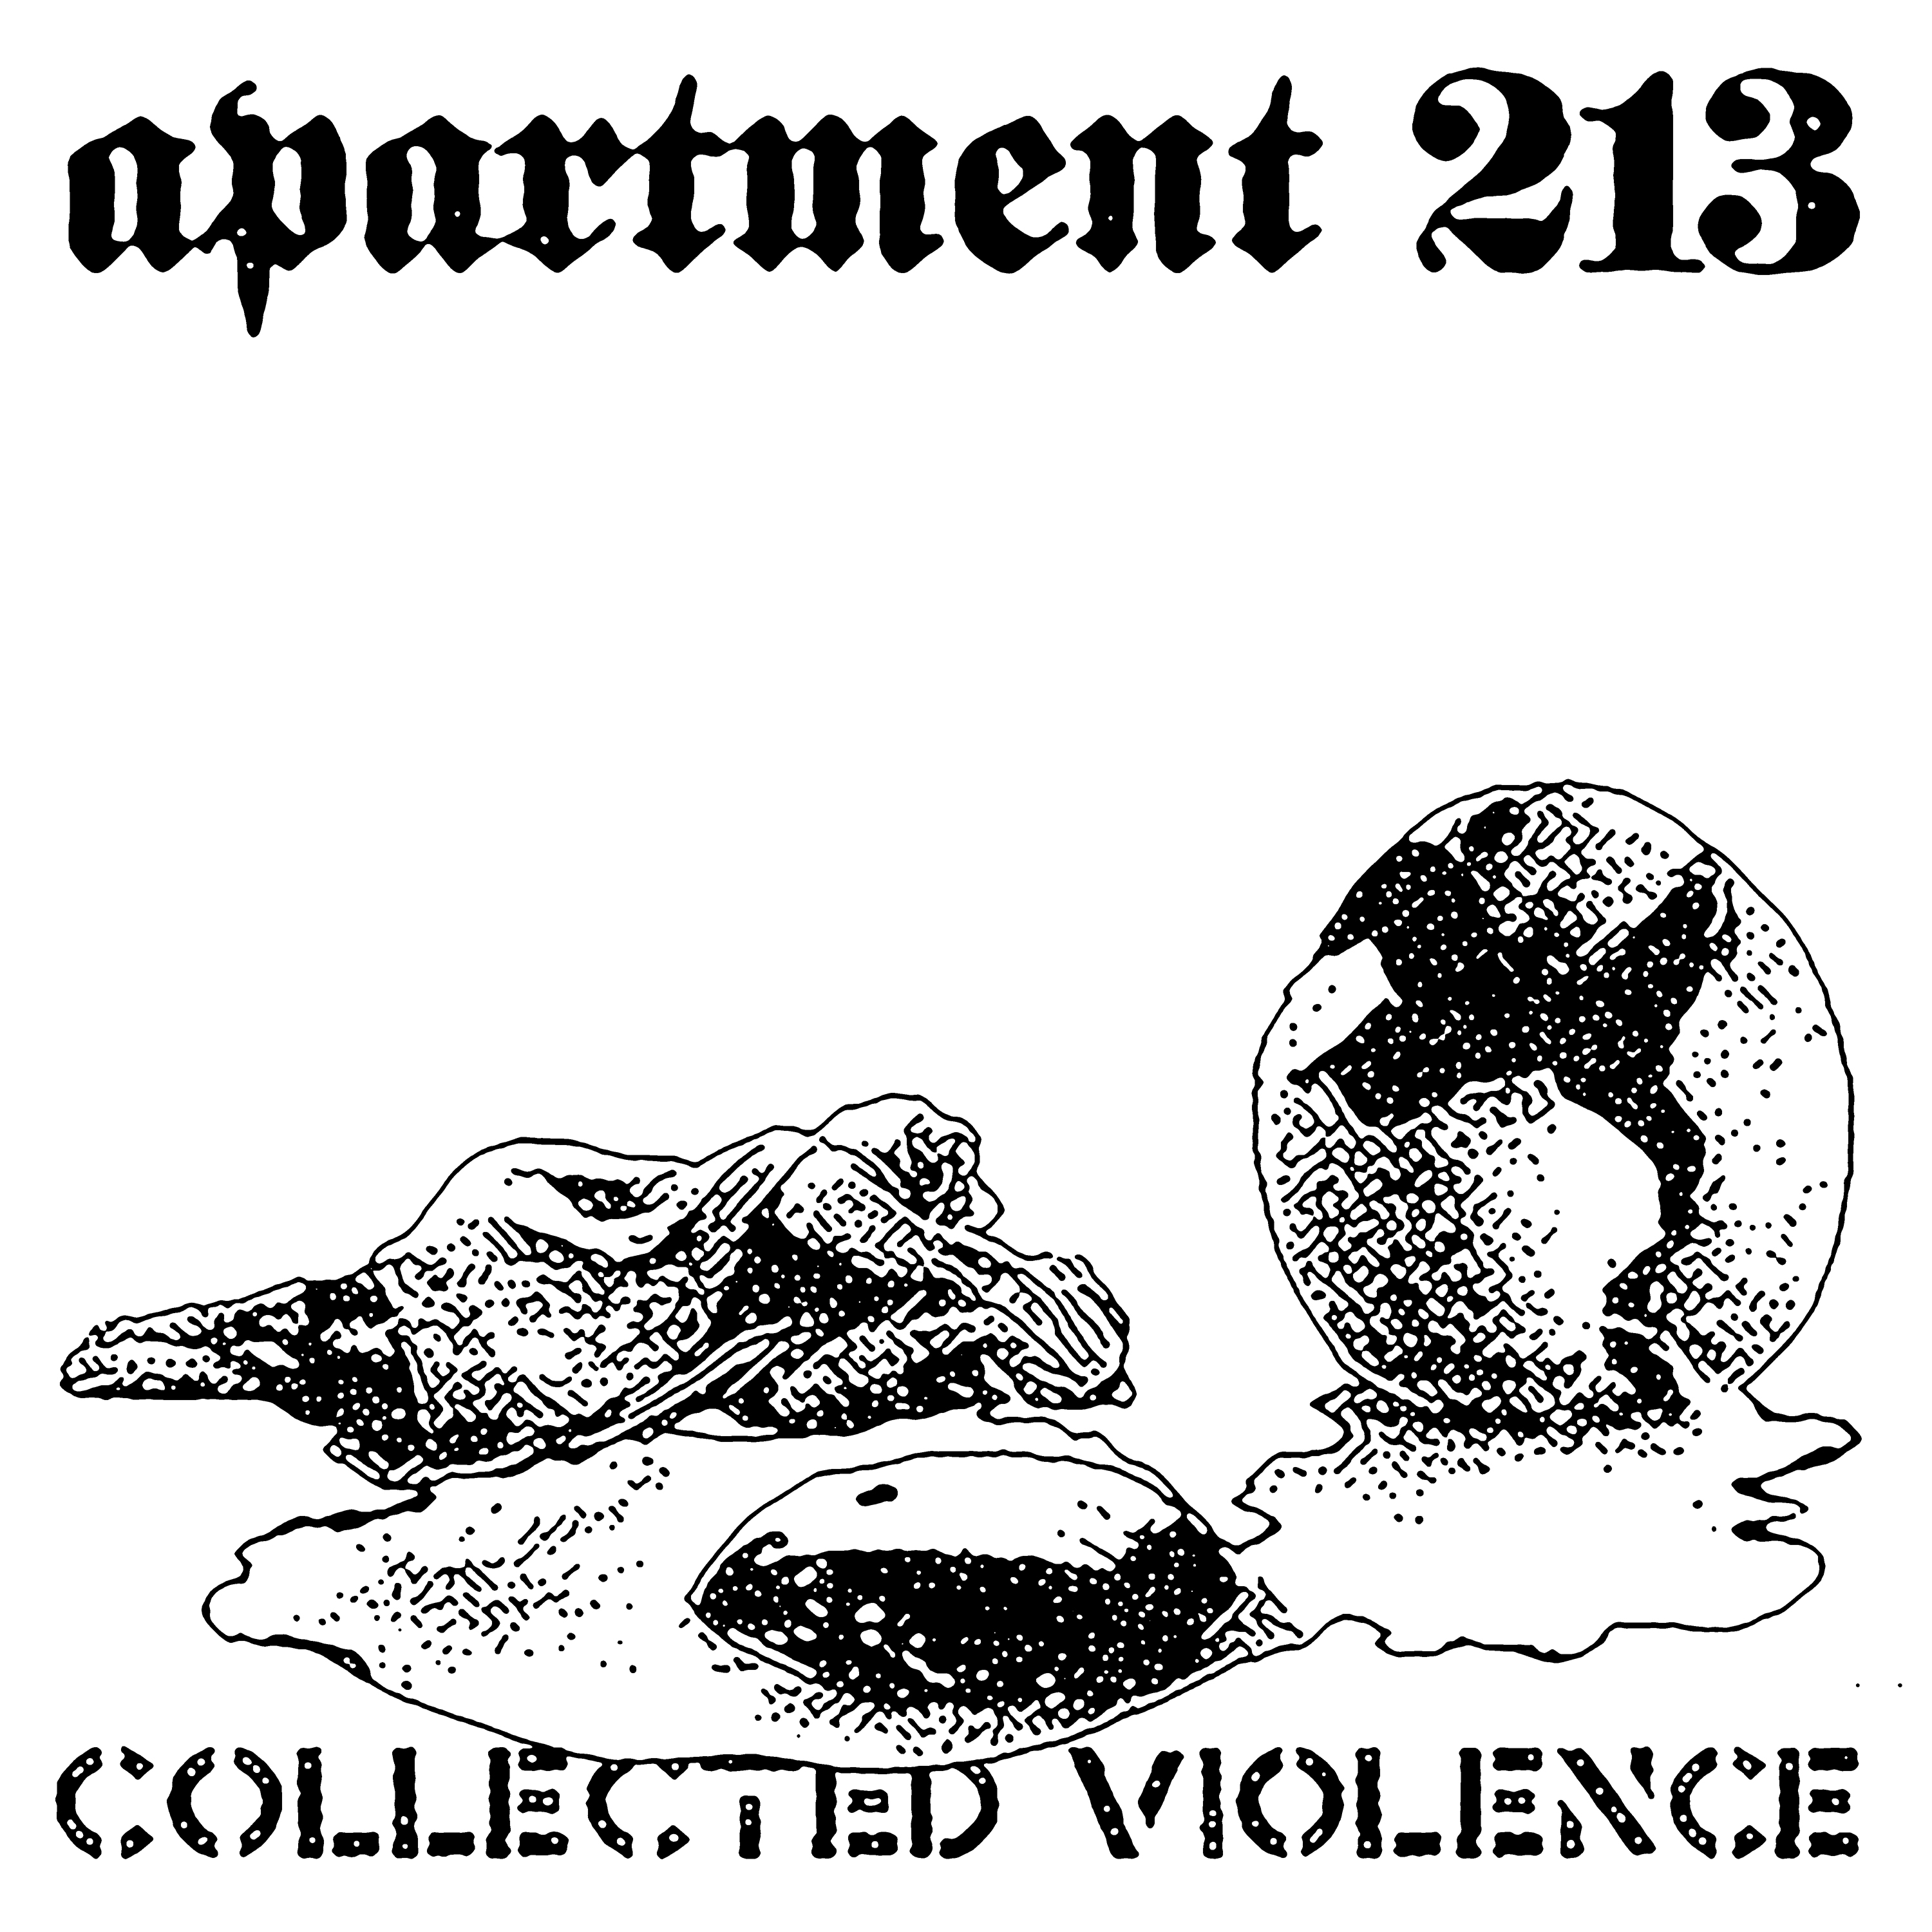 Thereu0027s No Two Ways About It: APARTMENT 213u0027s Collected Violence Is An  Entirely Excessive And Unrelenting Amount Of Material. 47 Songs In Length,  ...